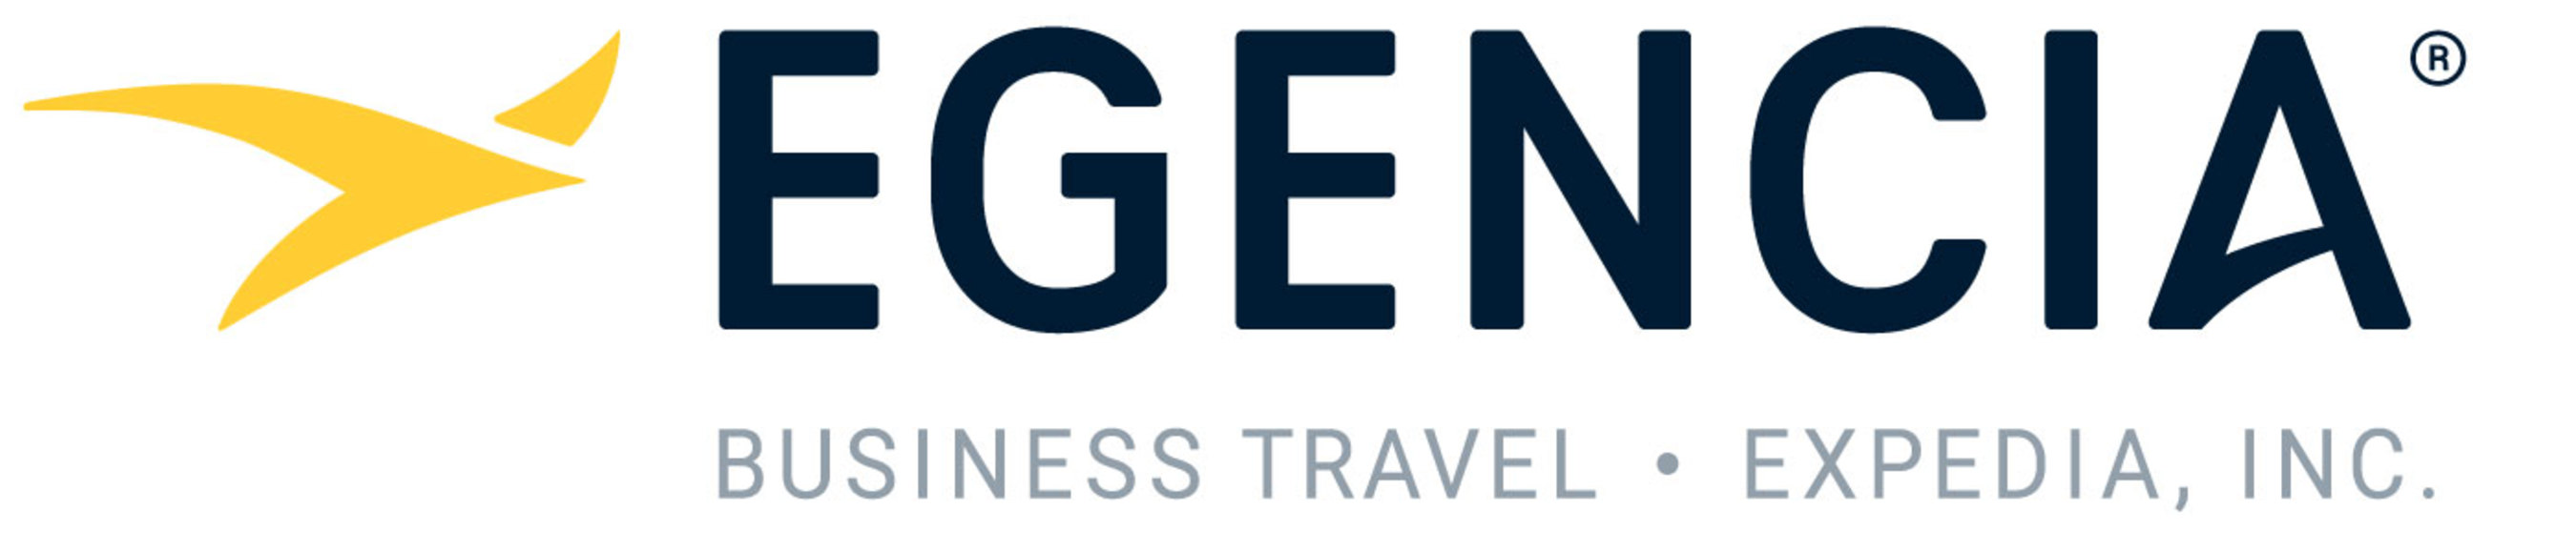 Egencia has successfully brought the technology heritage, relentless focus on user experience and innovative spirit of its parent company Expedia, Inc. into the enterprise. In 2013, Egencia launched its new app, Egencia TripNavigator, which dramatically improves the in-trip experience for business travelers. The app provides step-by-step navigation and offers integrated access to Egencia Travel Consultants. Today, 10,000 companies worldwide partner with Egencia to drive travel compliance and cost savings.